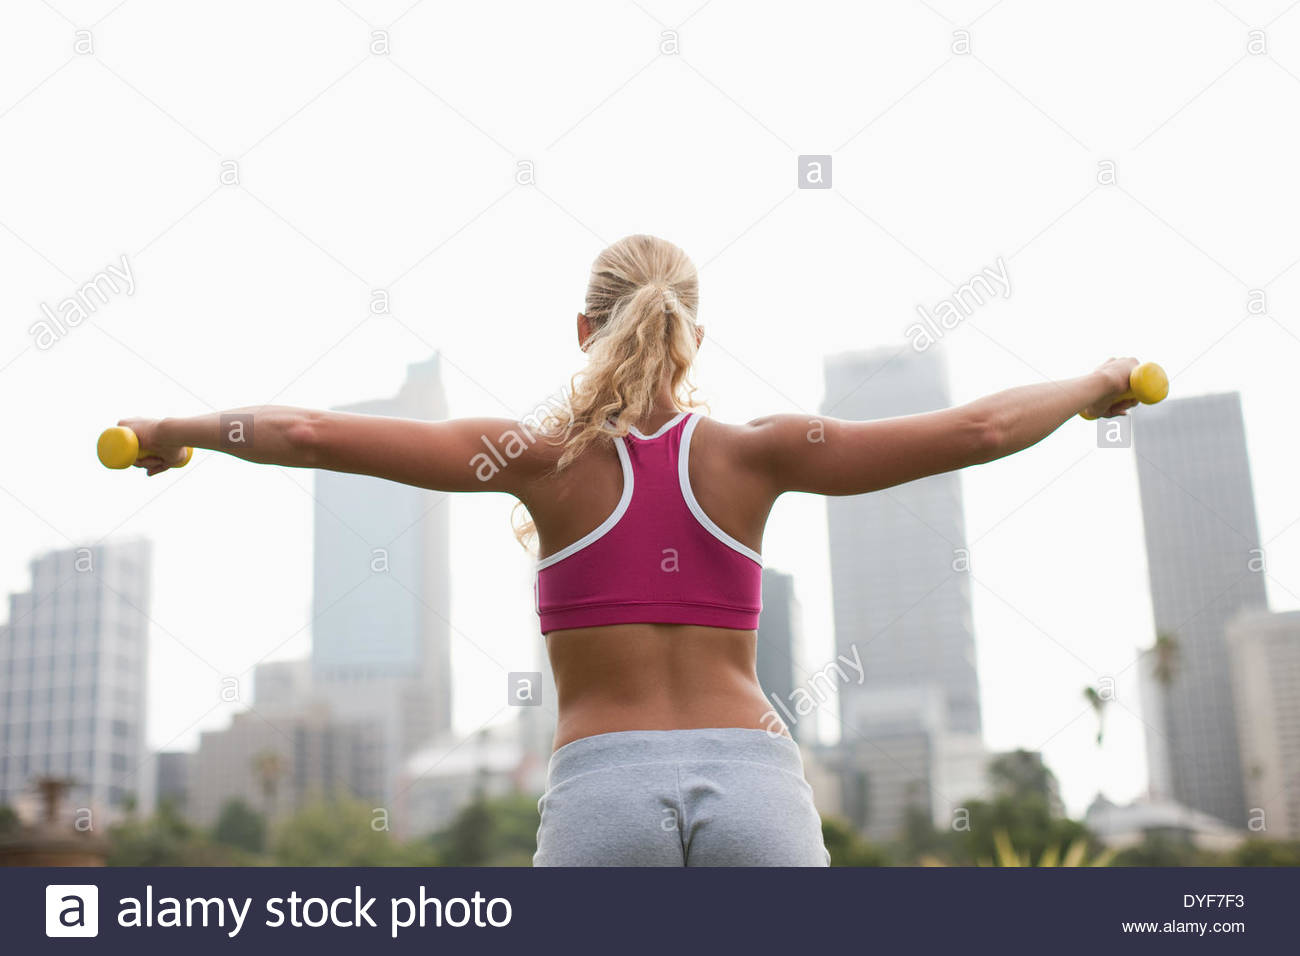 Woman lifting weights Photo Stock